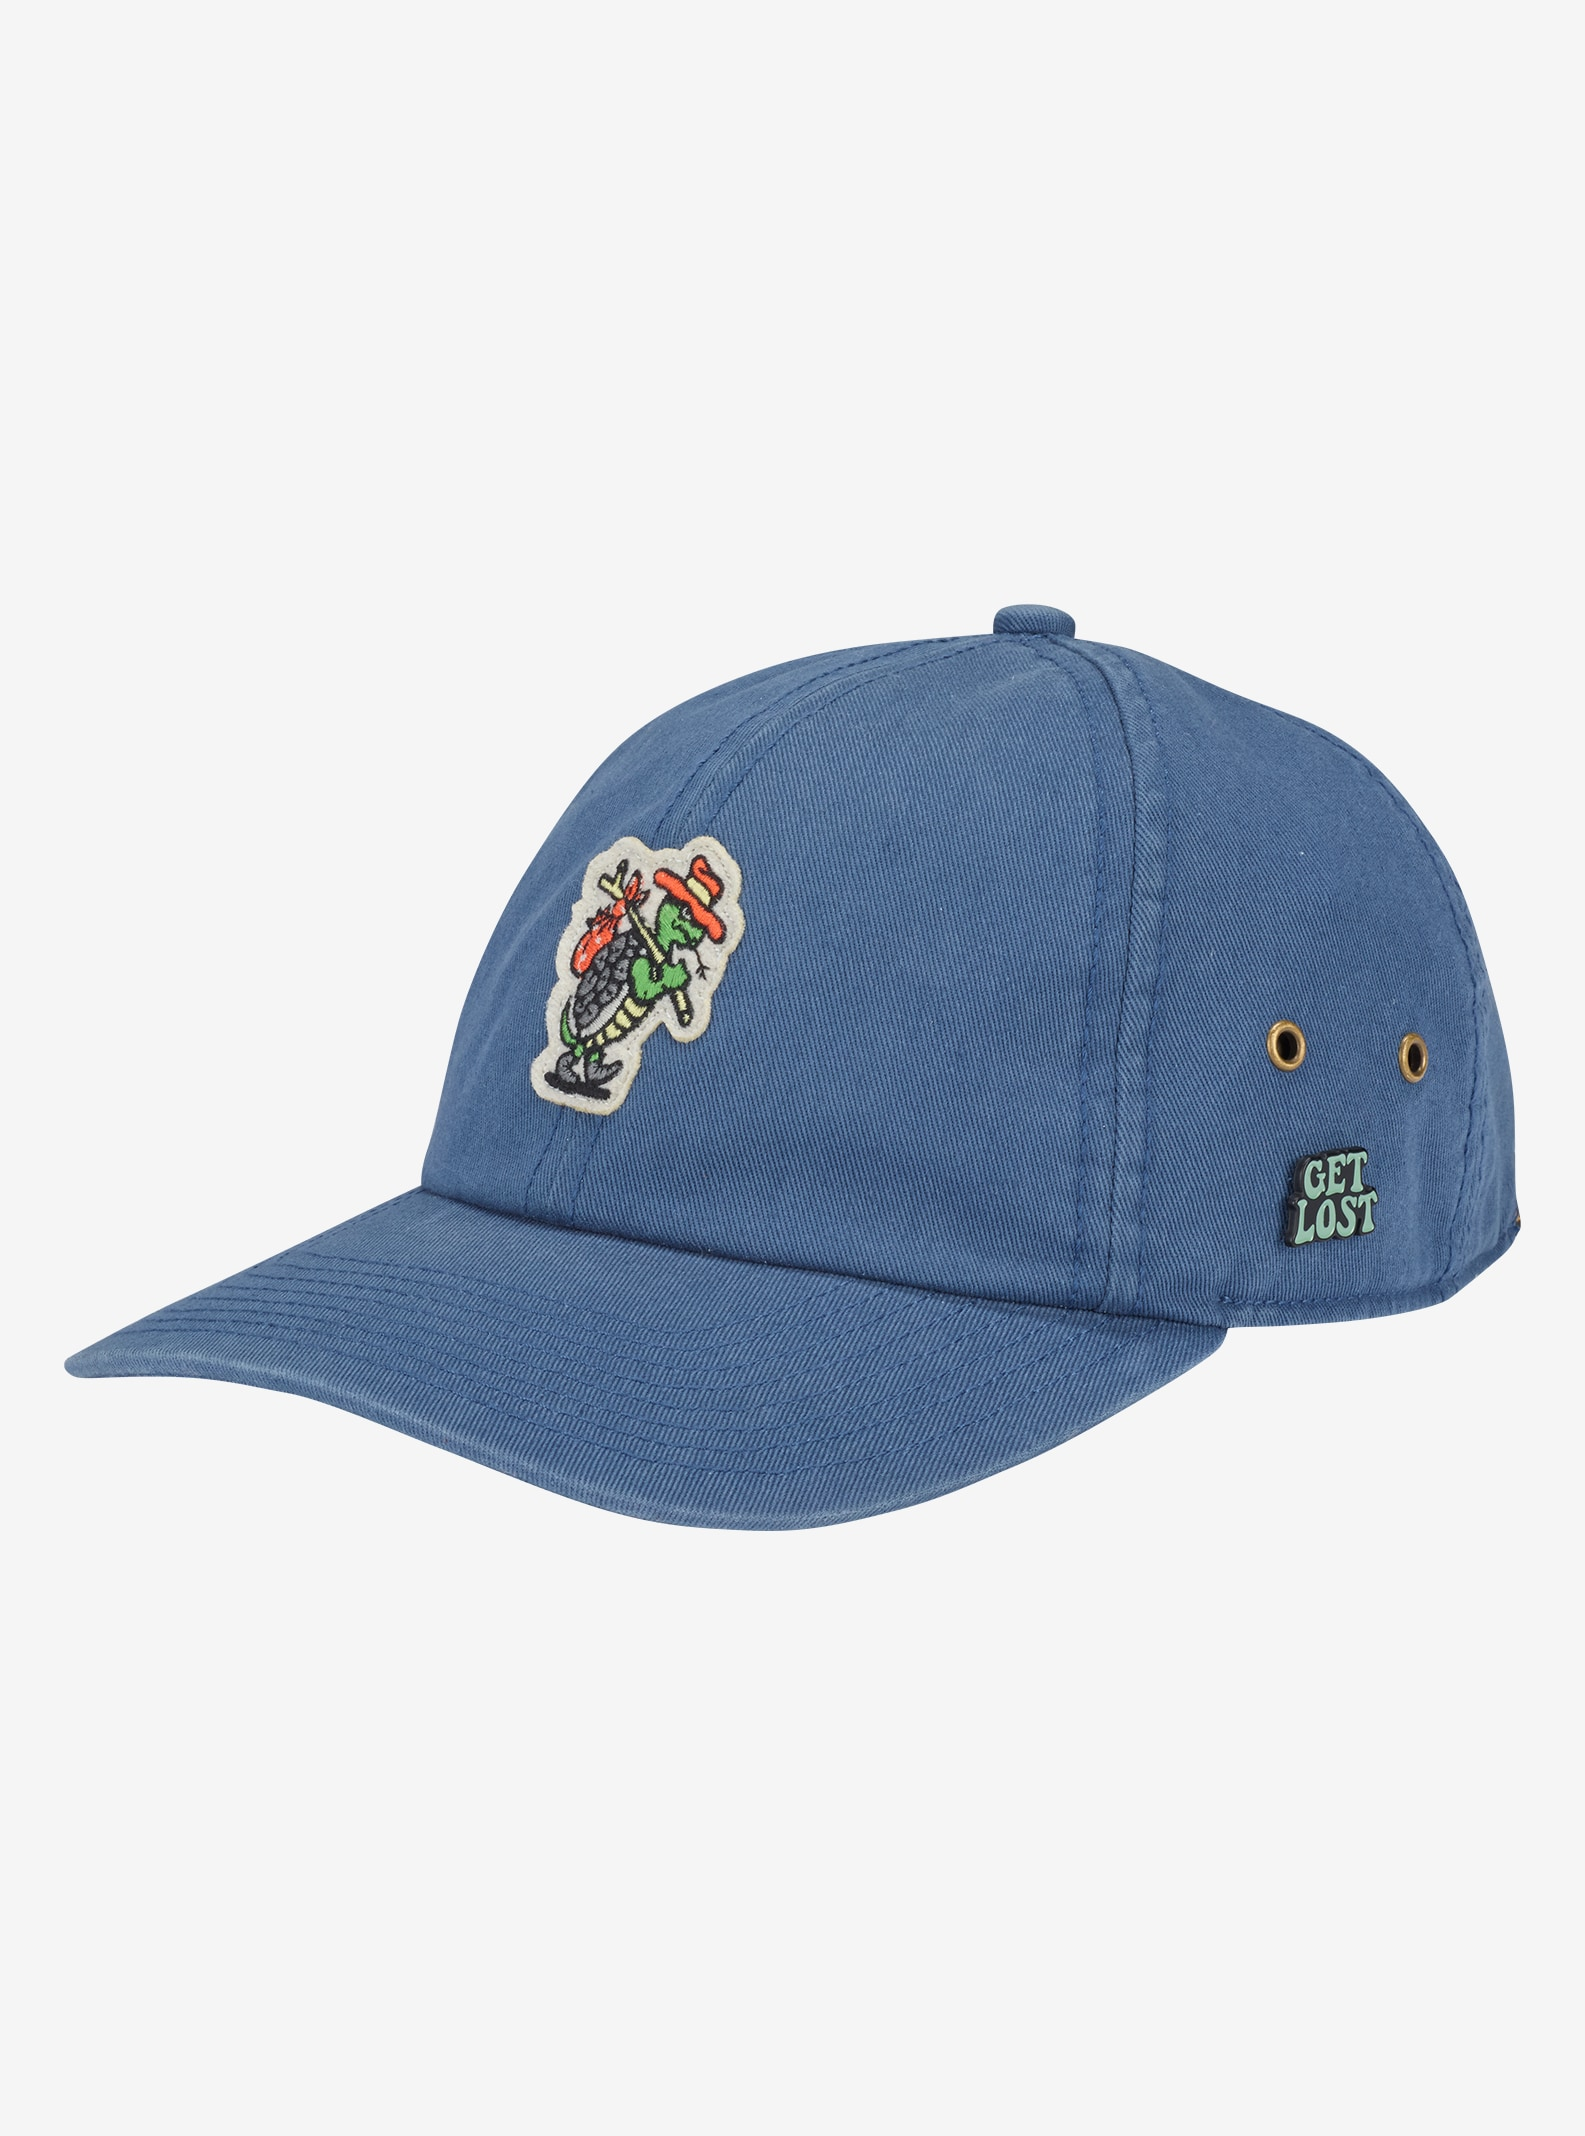 Burton Durble The Turtle Cap angezeigt in Indigo